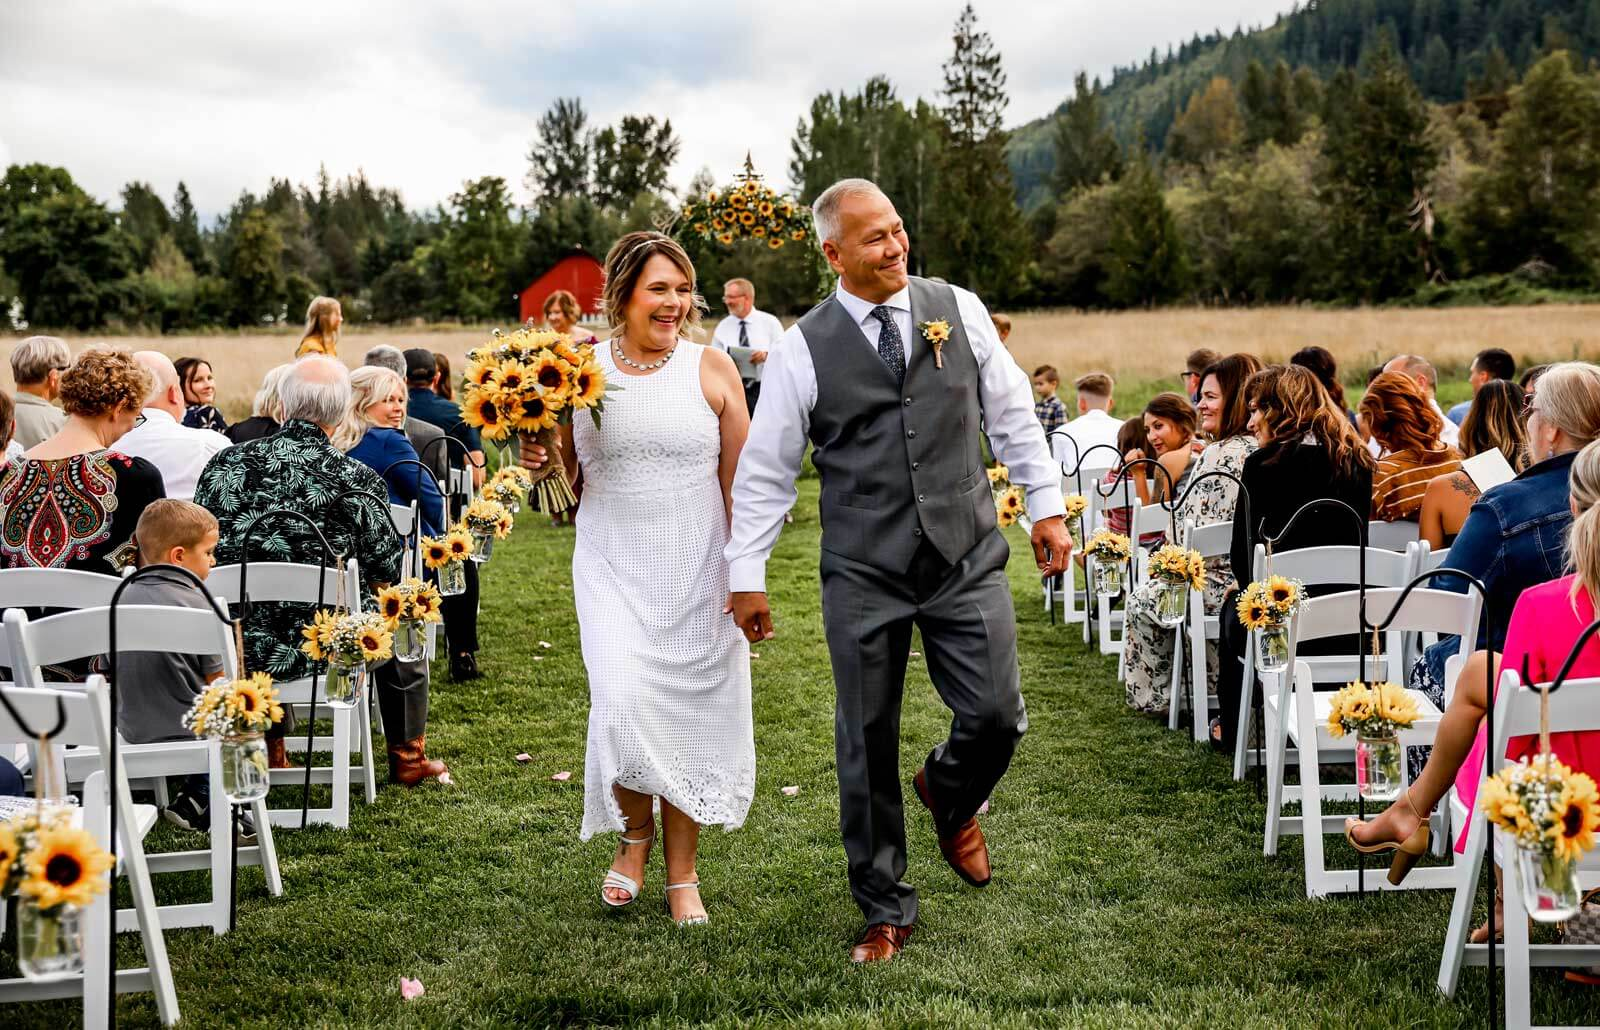 Bride and groom recessional at sunflower wedding at Mount Peak Farm